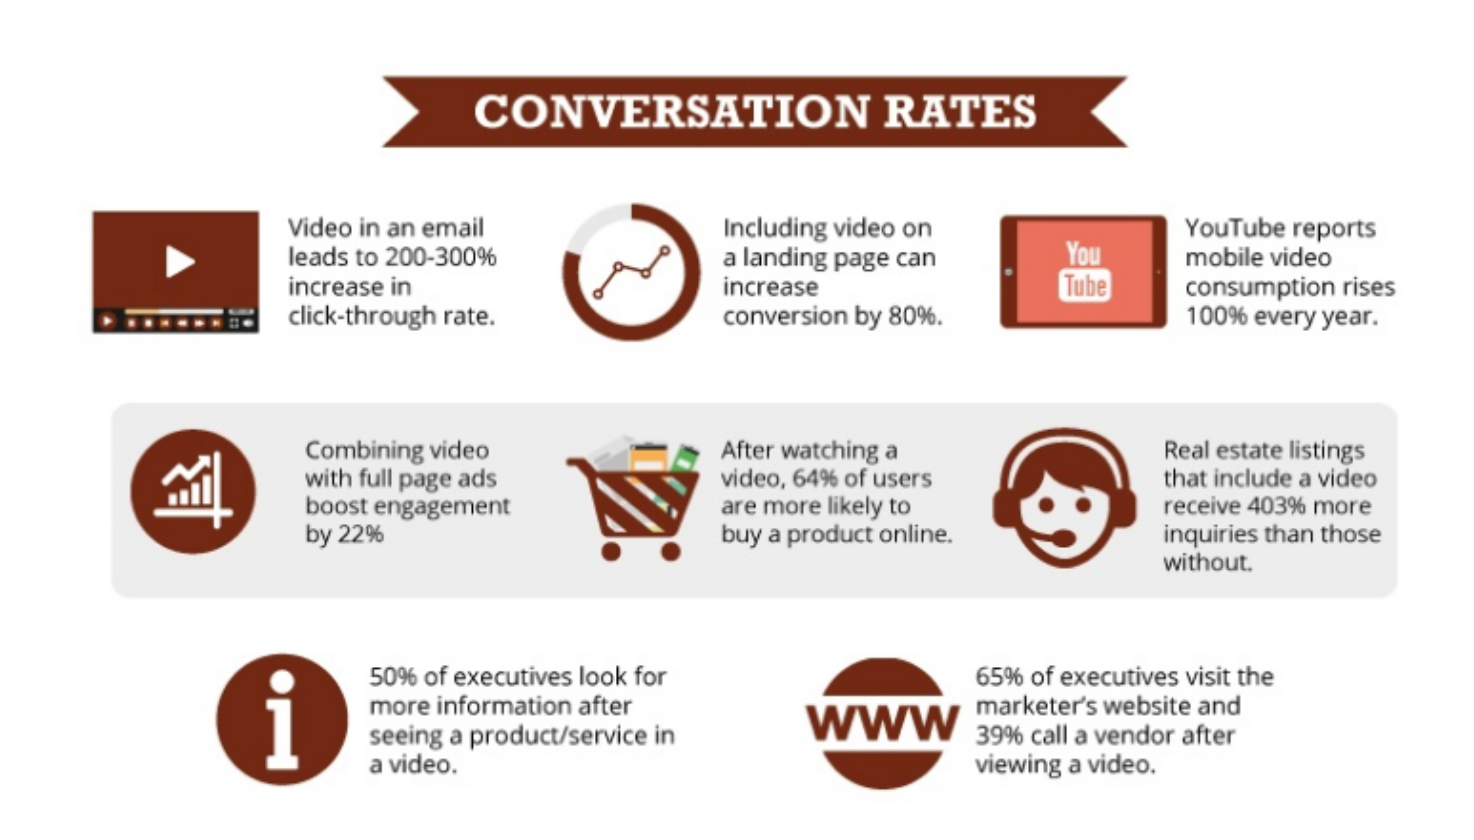 conversion-rates-using-video-from-HubSpot.png